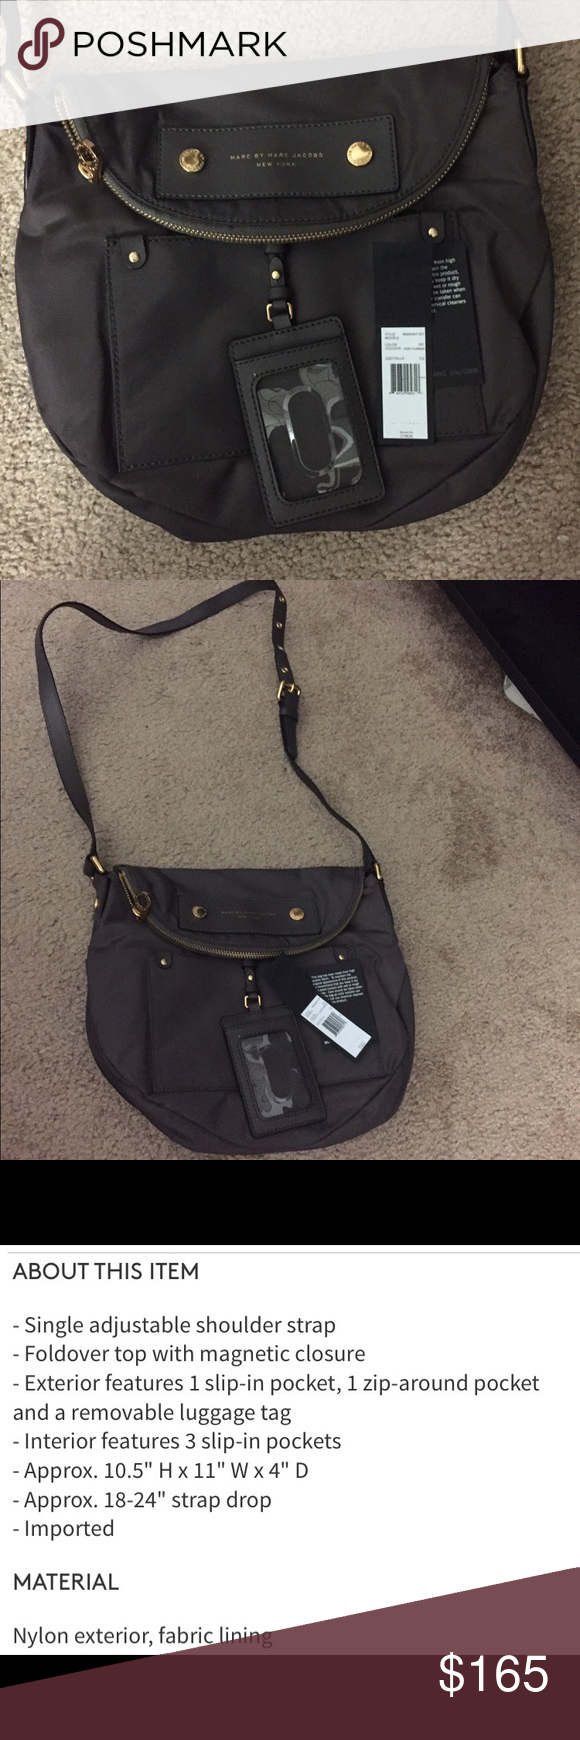 Marc Jacobs Crossbody Marc Jacobs cross-body NWT color faded aluminum serious inquiries only payment excepted paypal Marc Jacobs Bags Crossbody Bags